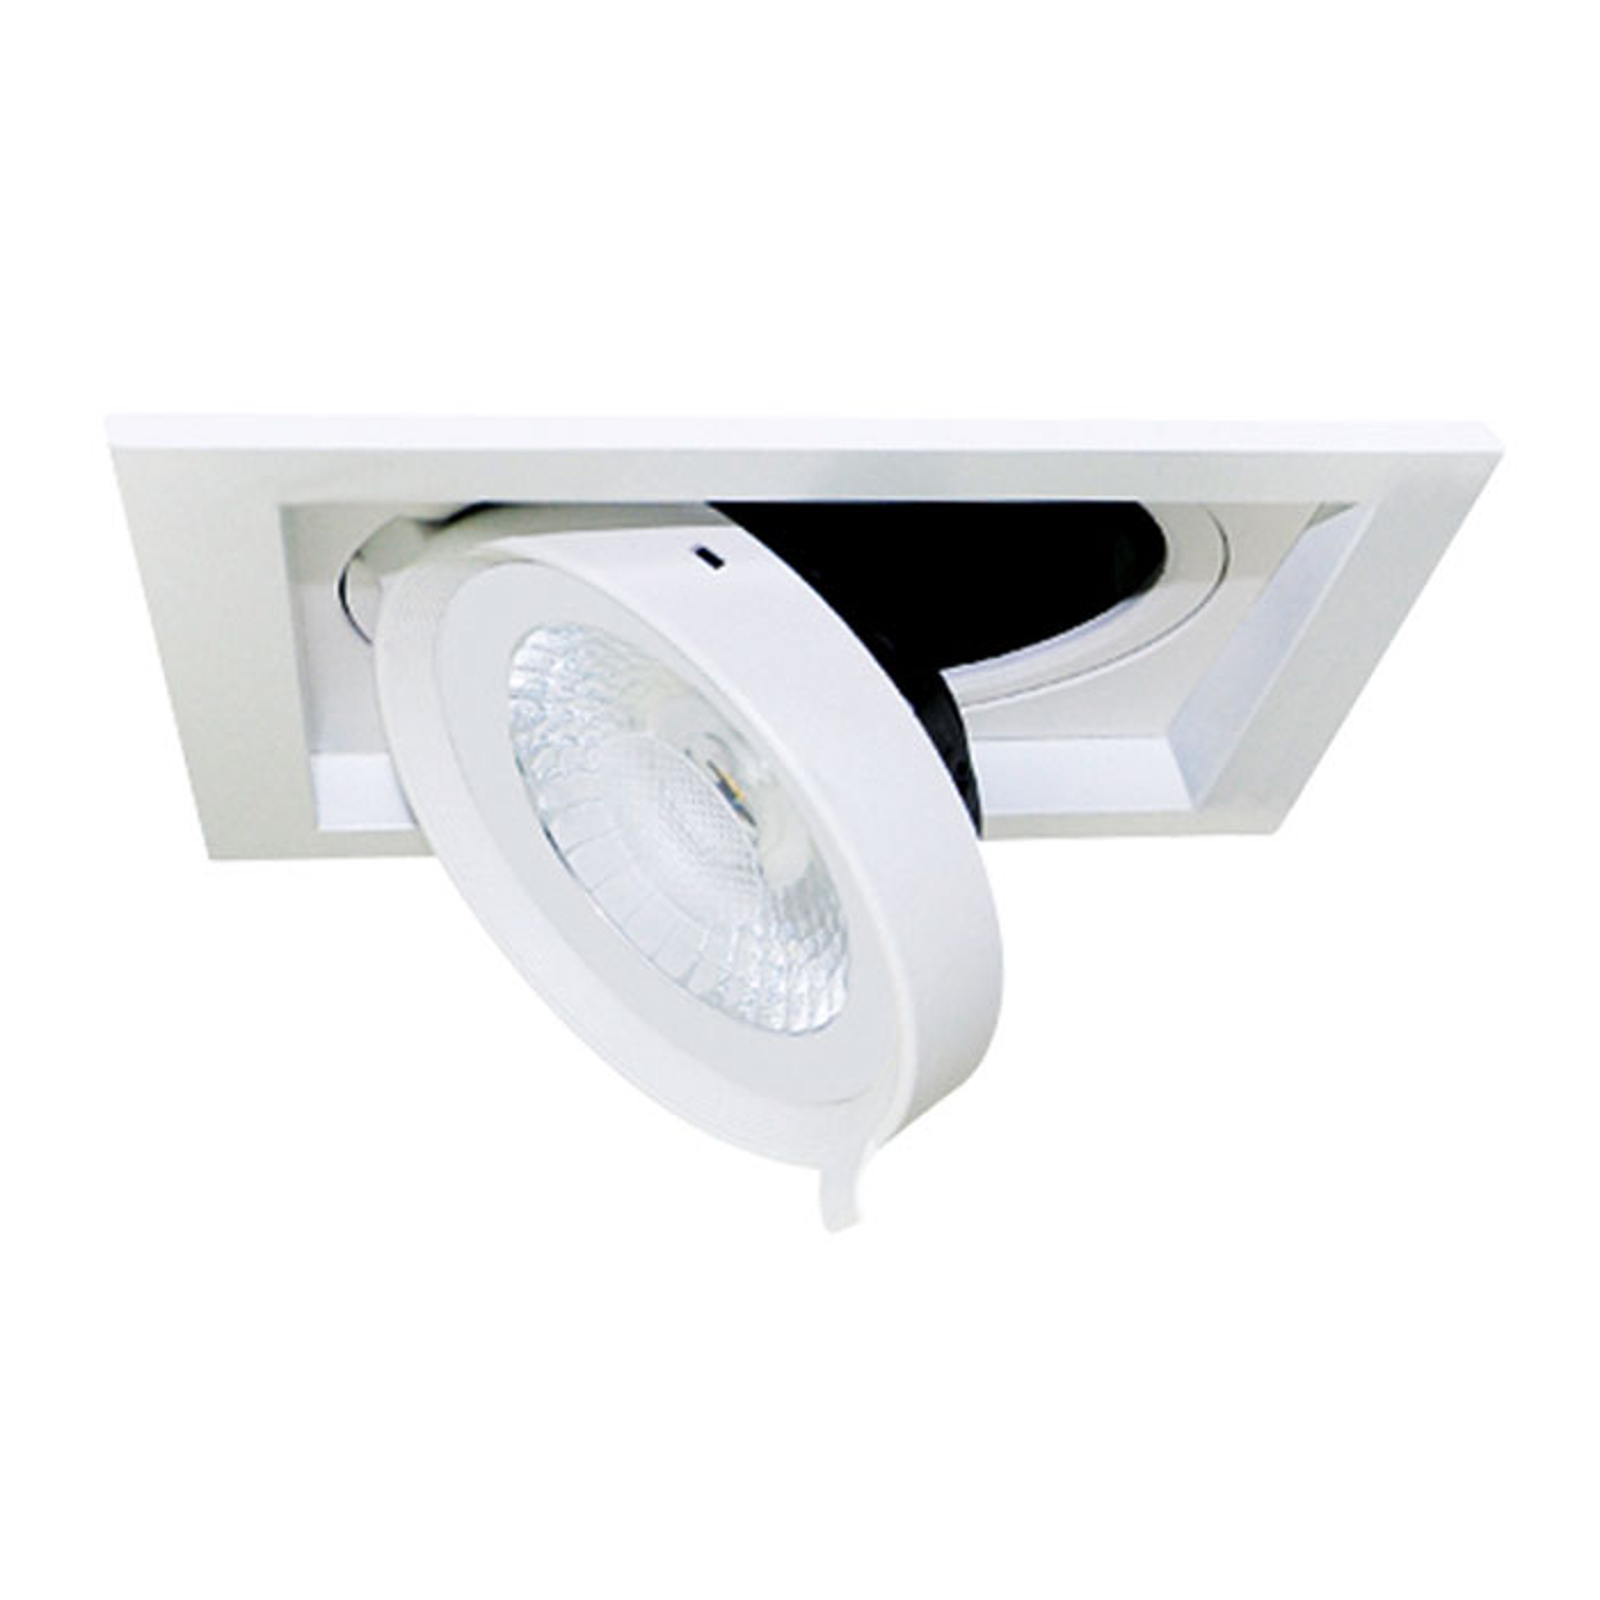 LED inbouwspot Quado1, 1-lamp, dimbaar 38°